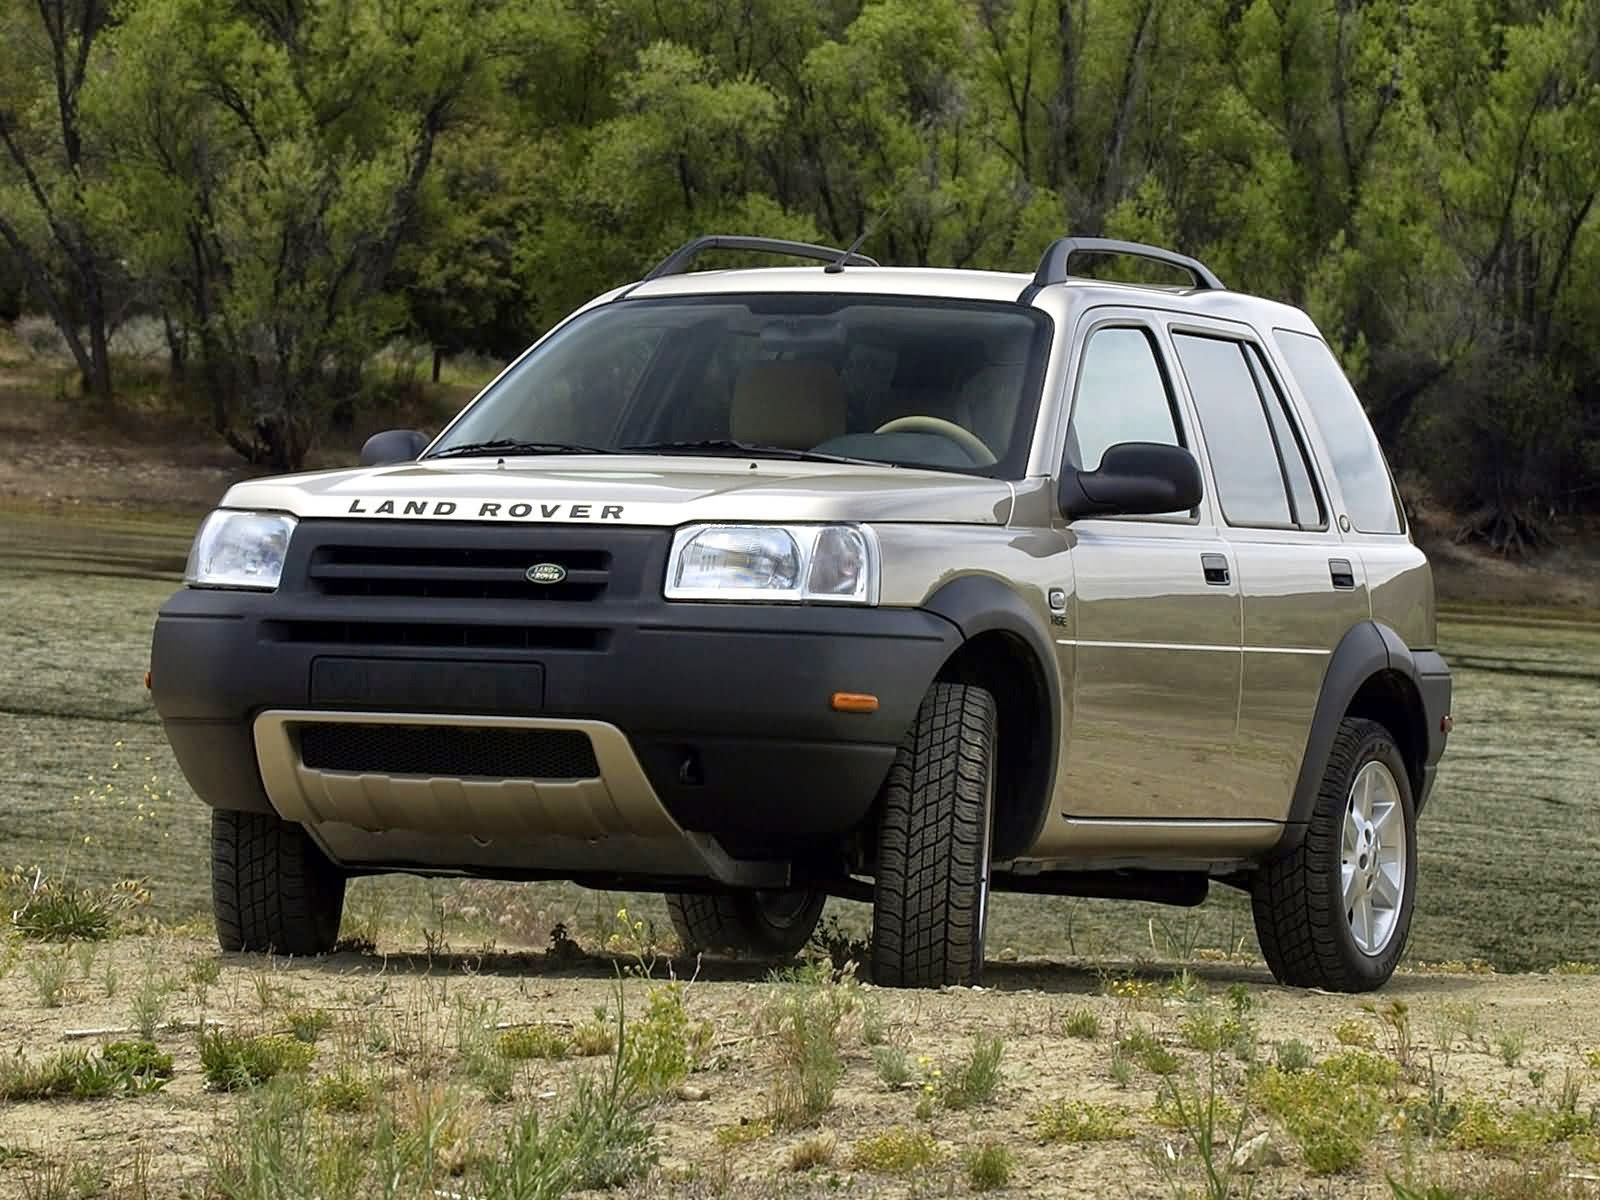 28 2013 Land Rover Freelander 2 – Now more rugged striking and